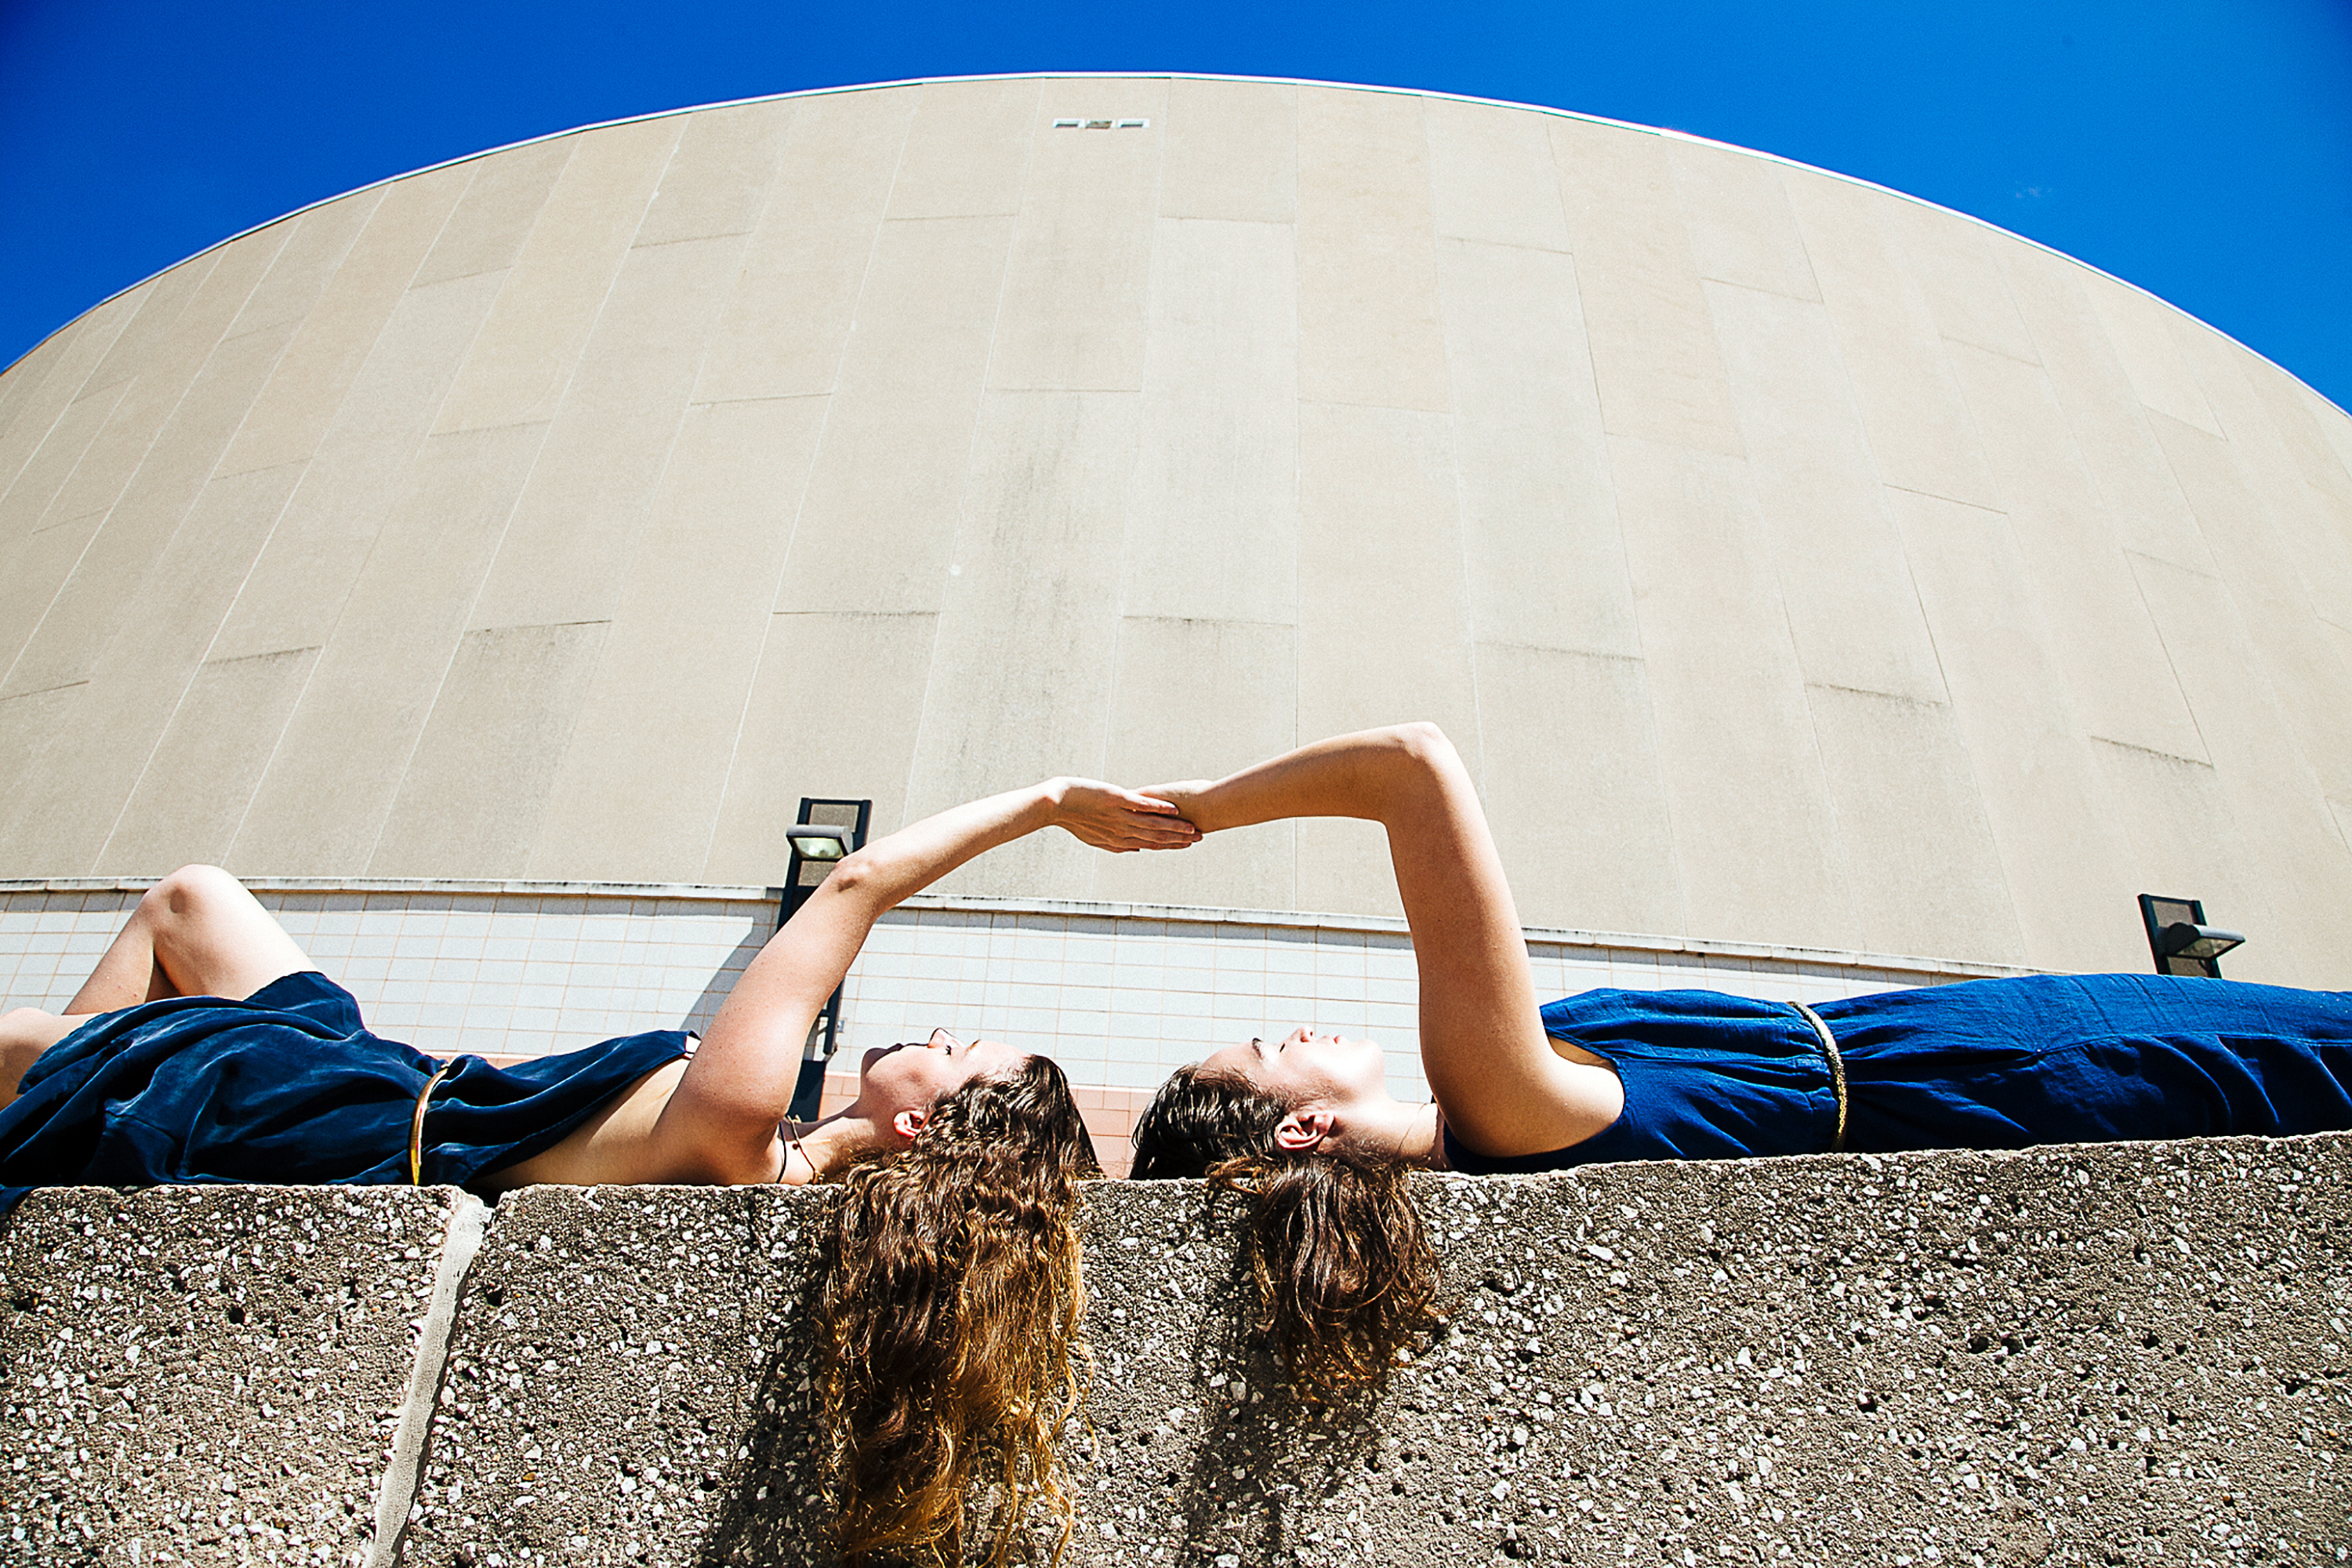 Navy blue dresses and brown curly hair two girls hands touching lying on ledge